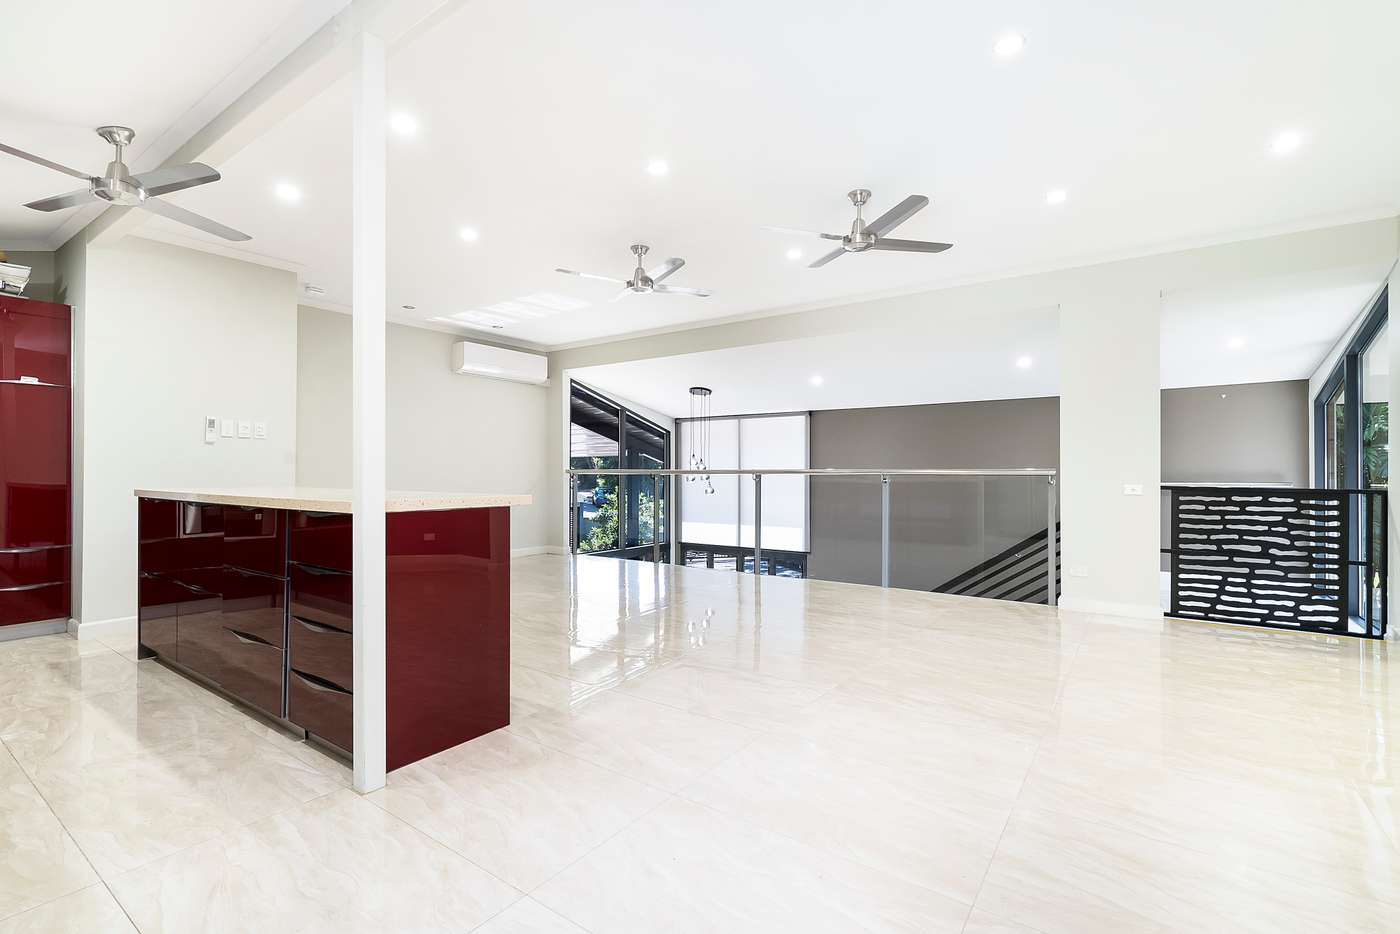 Sixth view of Homely house listing, 26 Packard Street, Larrakeyah NT 820